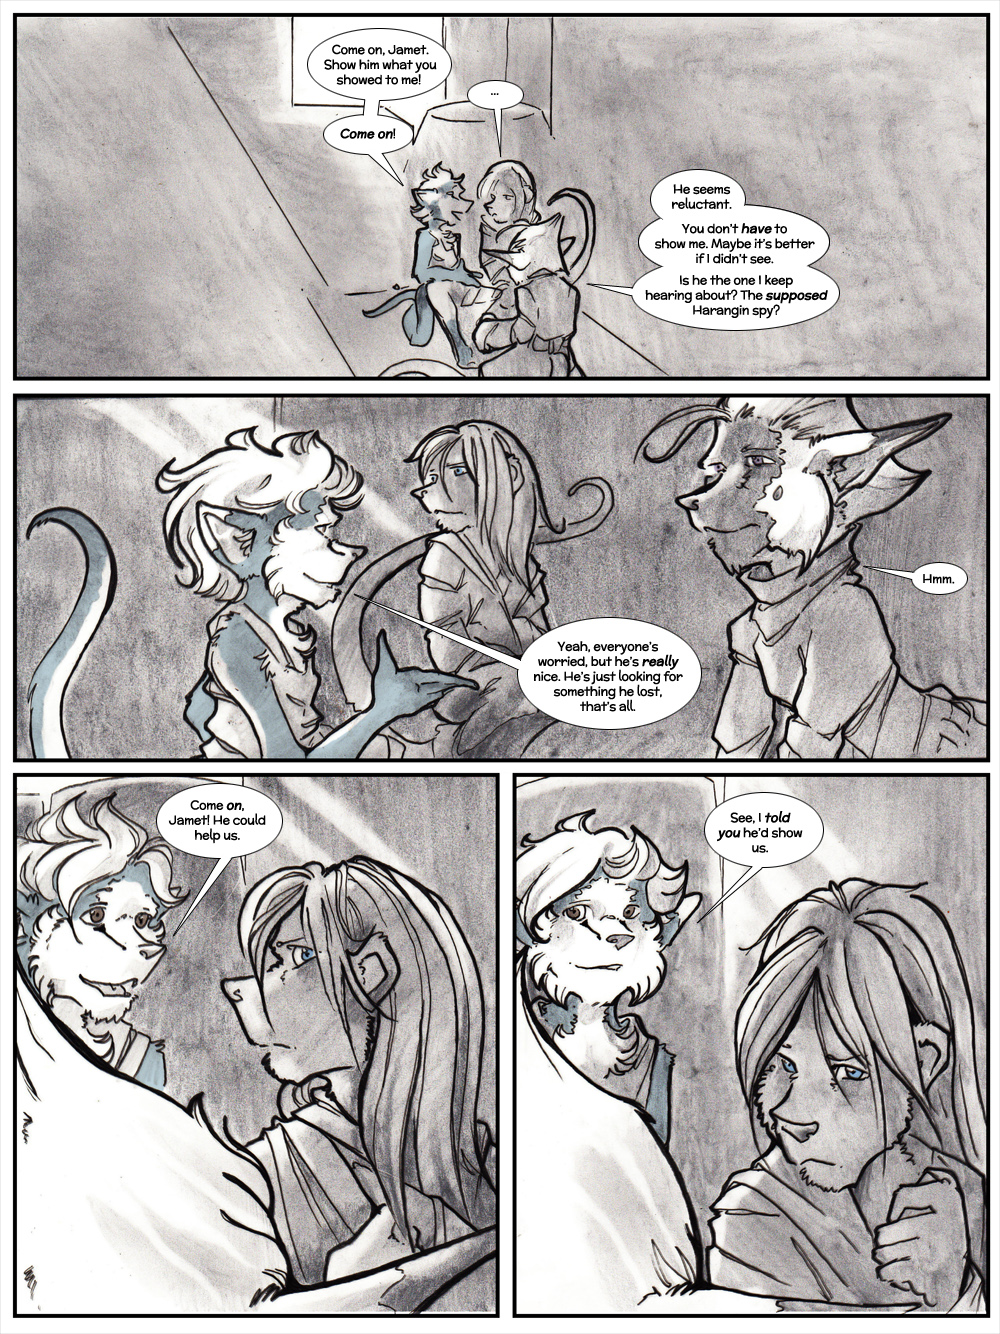 Chapter Three: Jamet's Story: Page 59